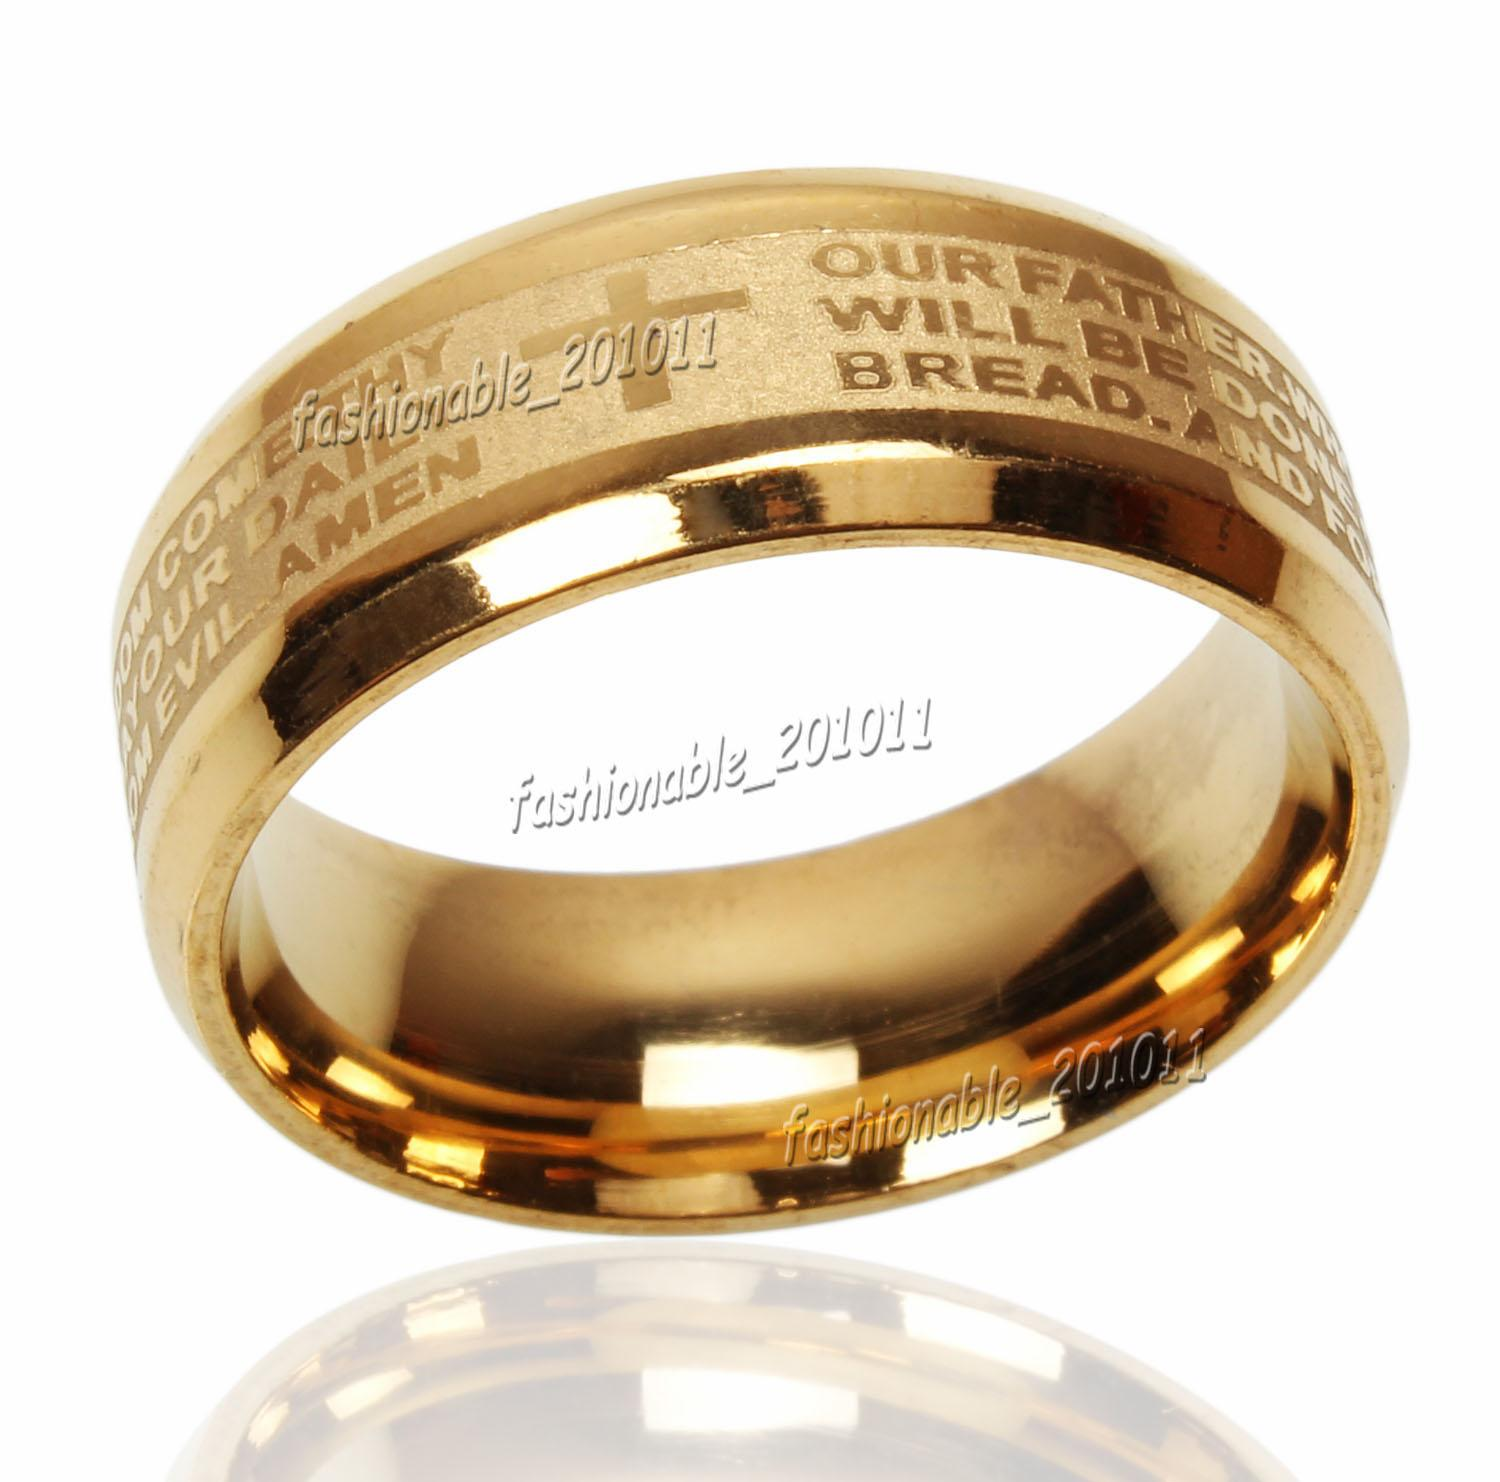 2019 Stainless Steel Etched English Lord's Prayer Cross Wedding Gold Band Ring Size 6 14 New From Fashionable201011 081 Dhgate: 20mm Cross Wedding Bands At Websimilar.org